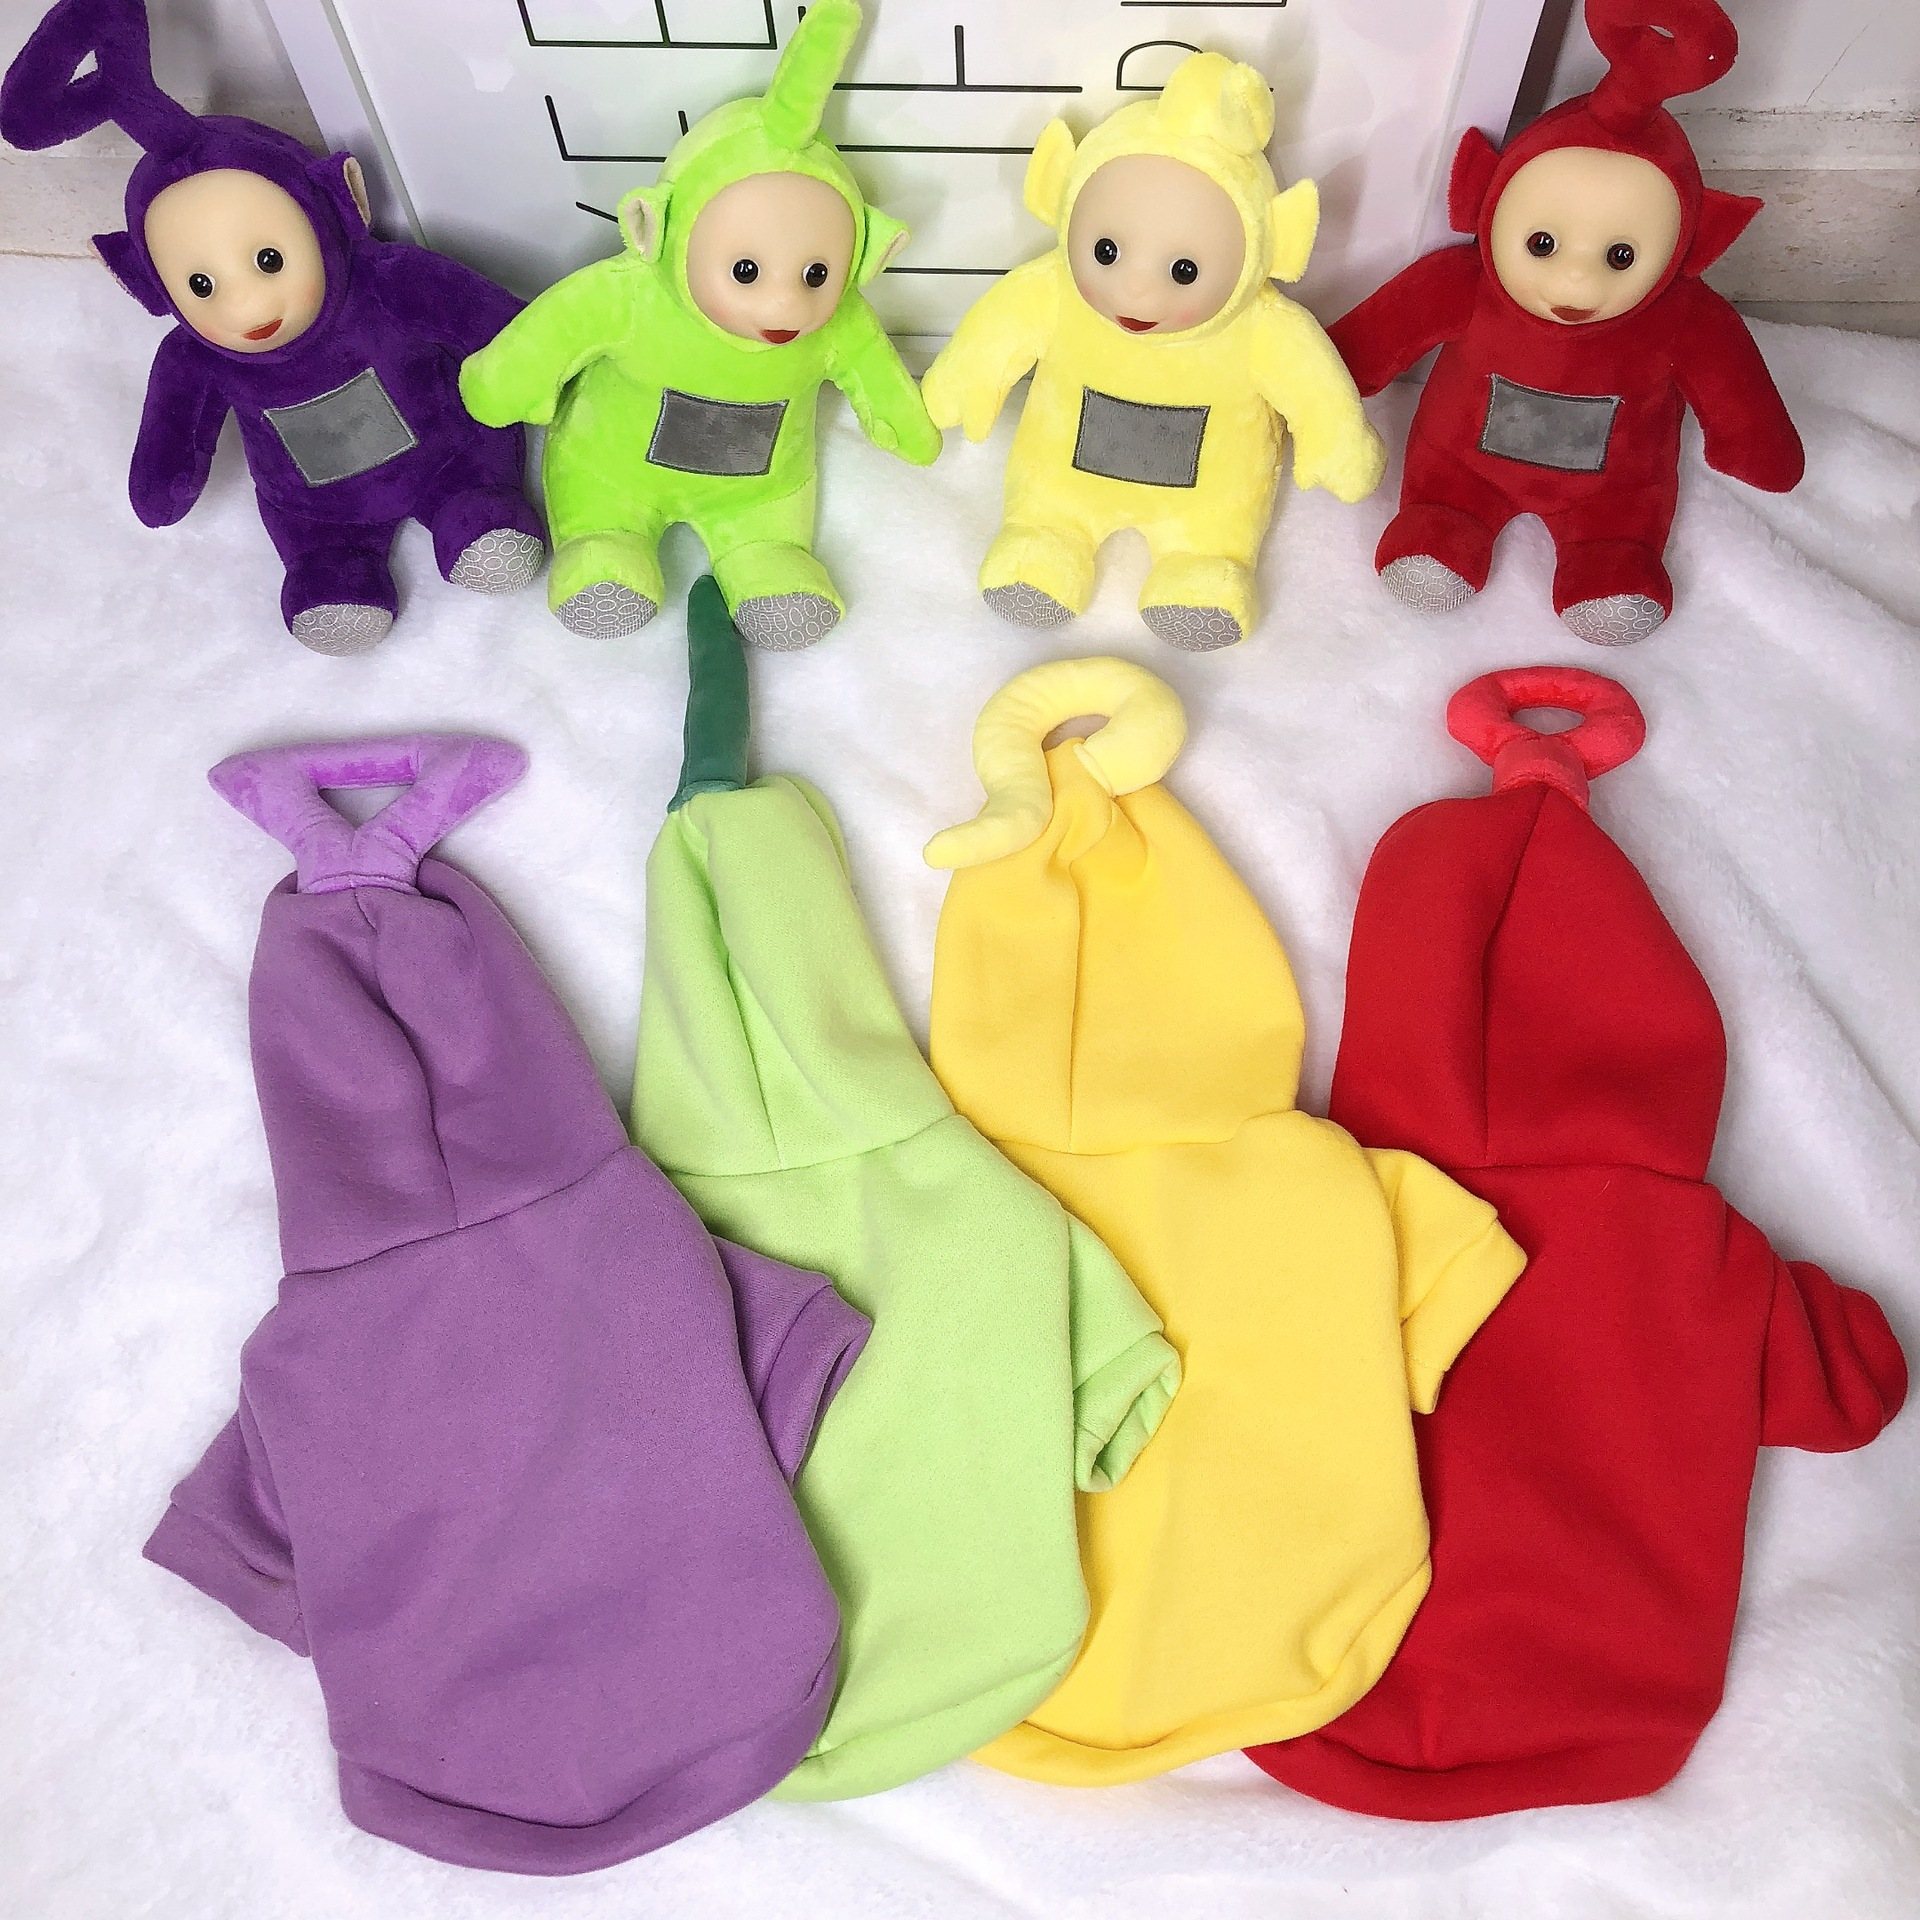 Dog Clothes Funny Teletubbies Pets Clothing Winter Dog Sweater Small Medium Pet Cat Dogs Cot Pets Jackets Corgi Shiba Inu earrings